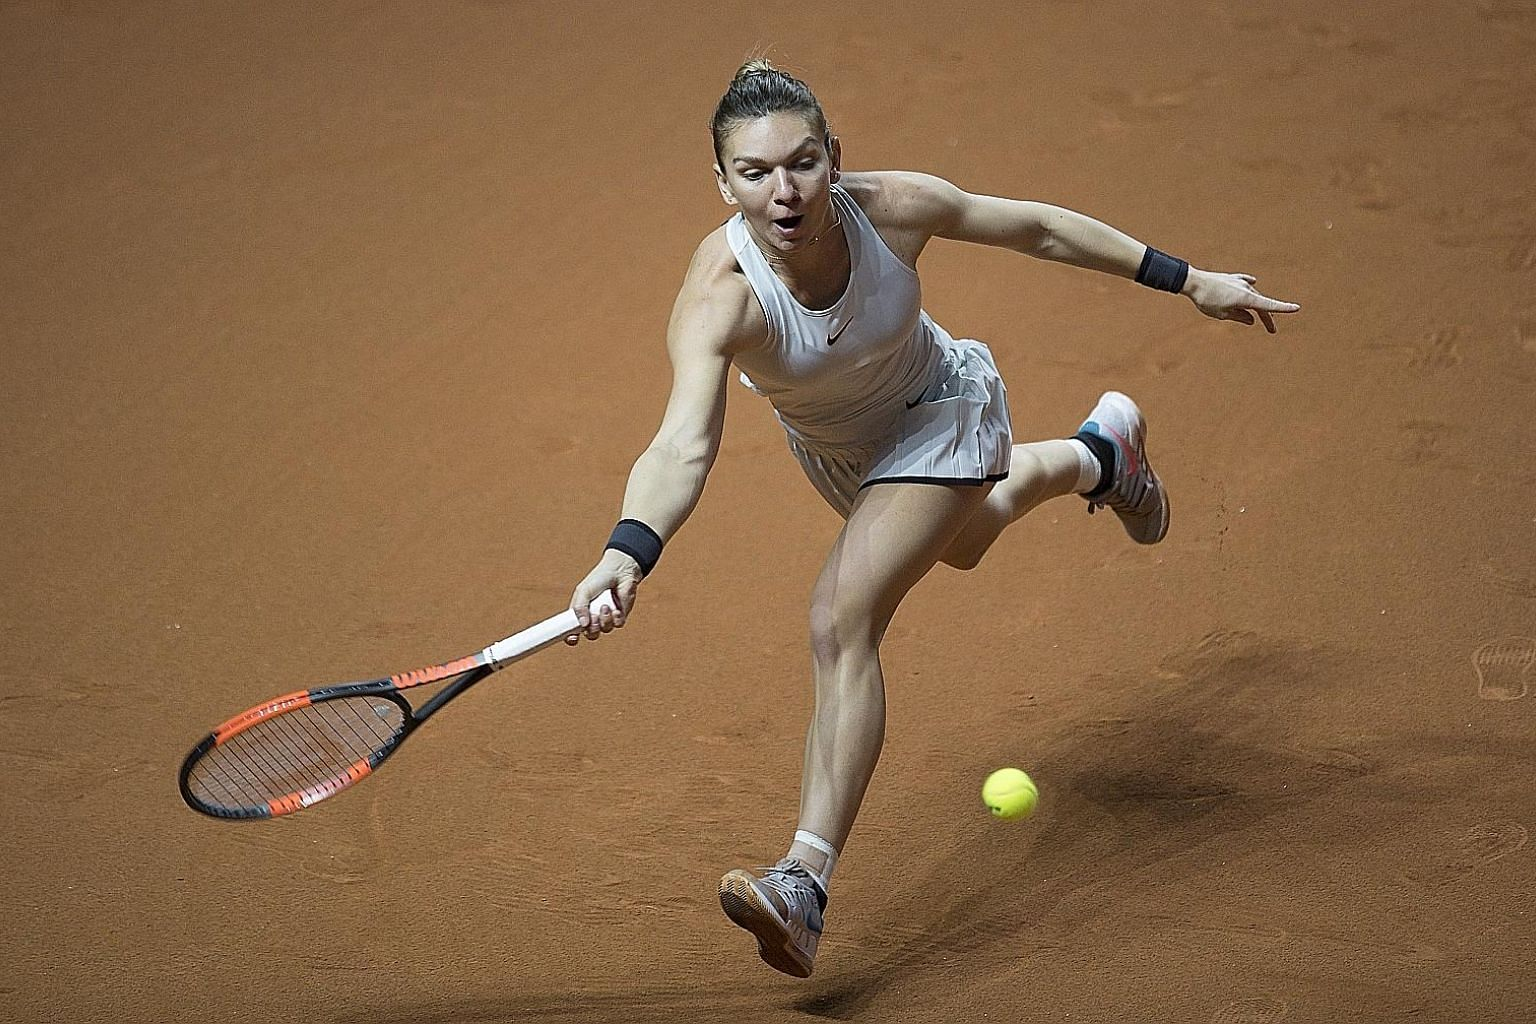 Romanian world No. 1 Simona Halep's tennis foundations were laid on clay and while not the strongest player, she adapts well to the surface.